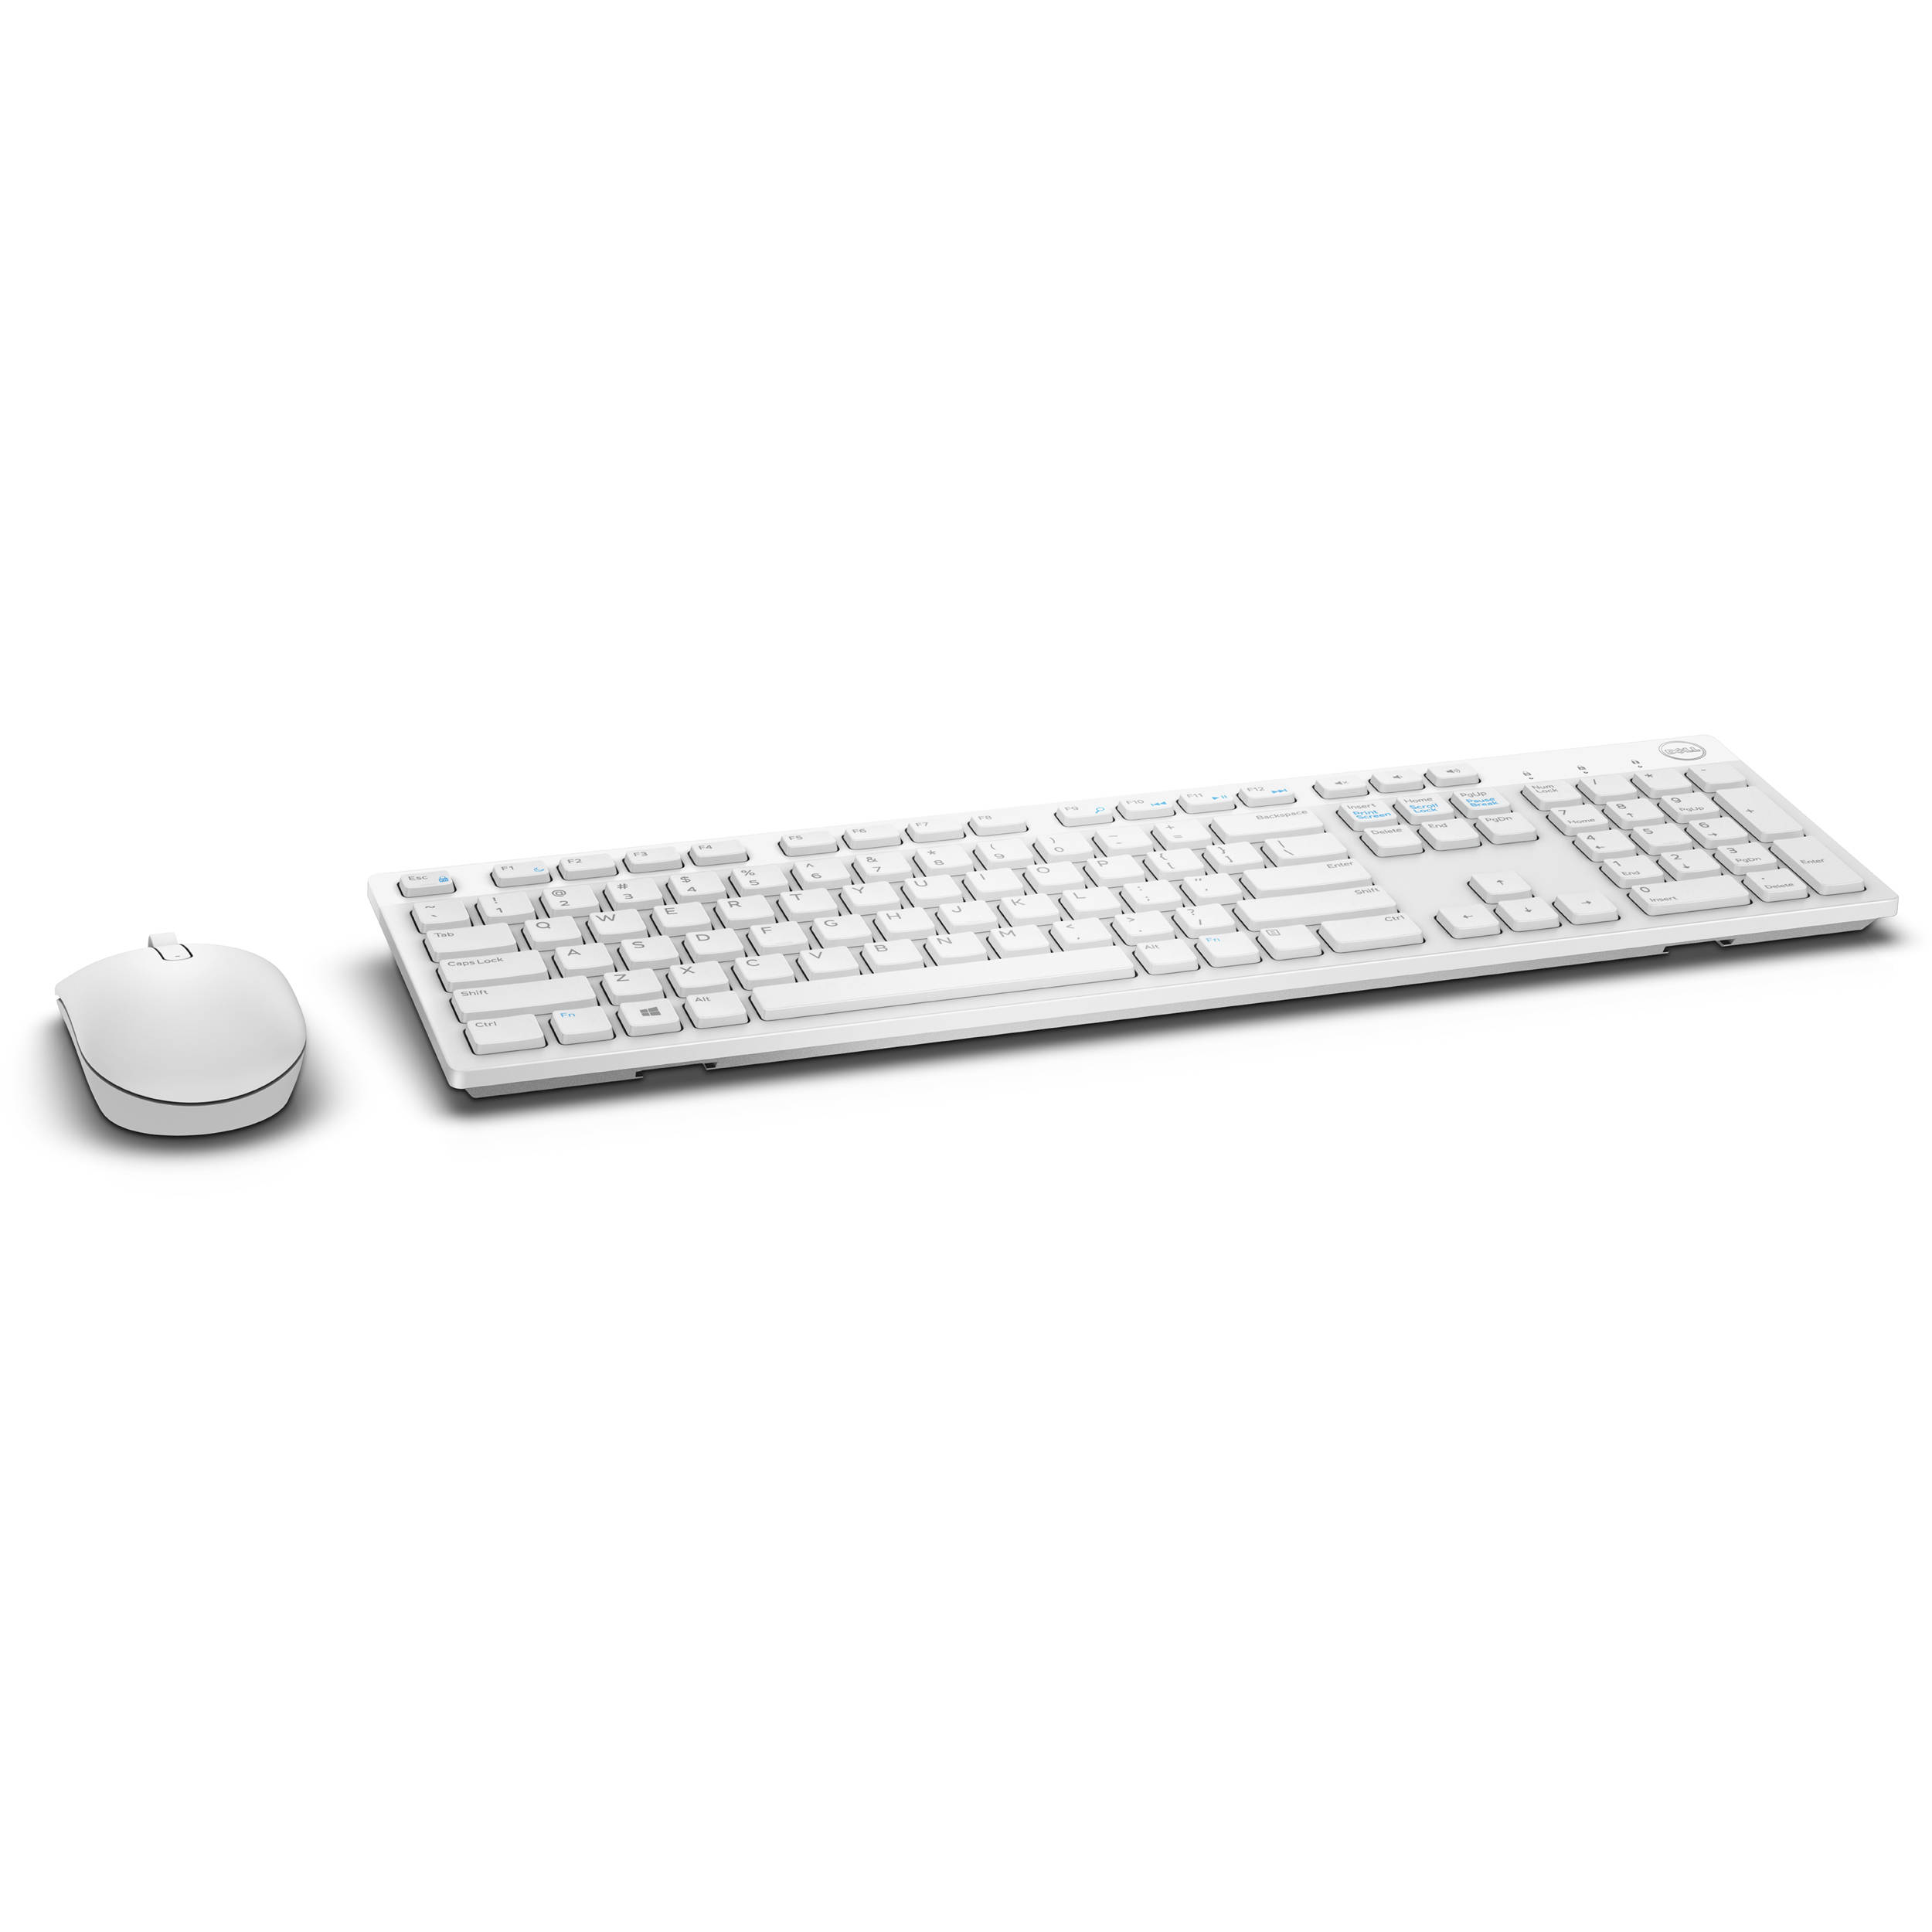 Dell KM636 Wireless Keyboard and Mouse (White)